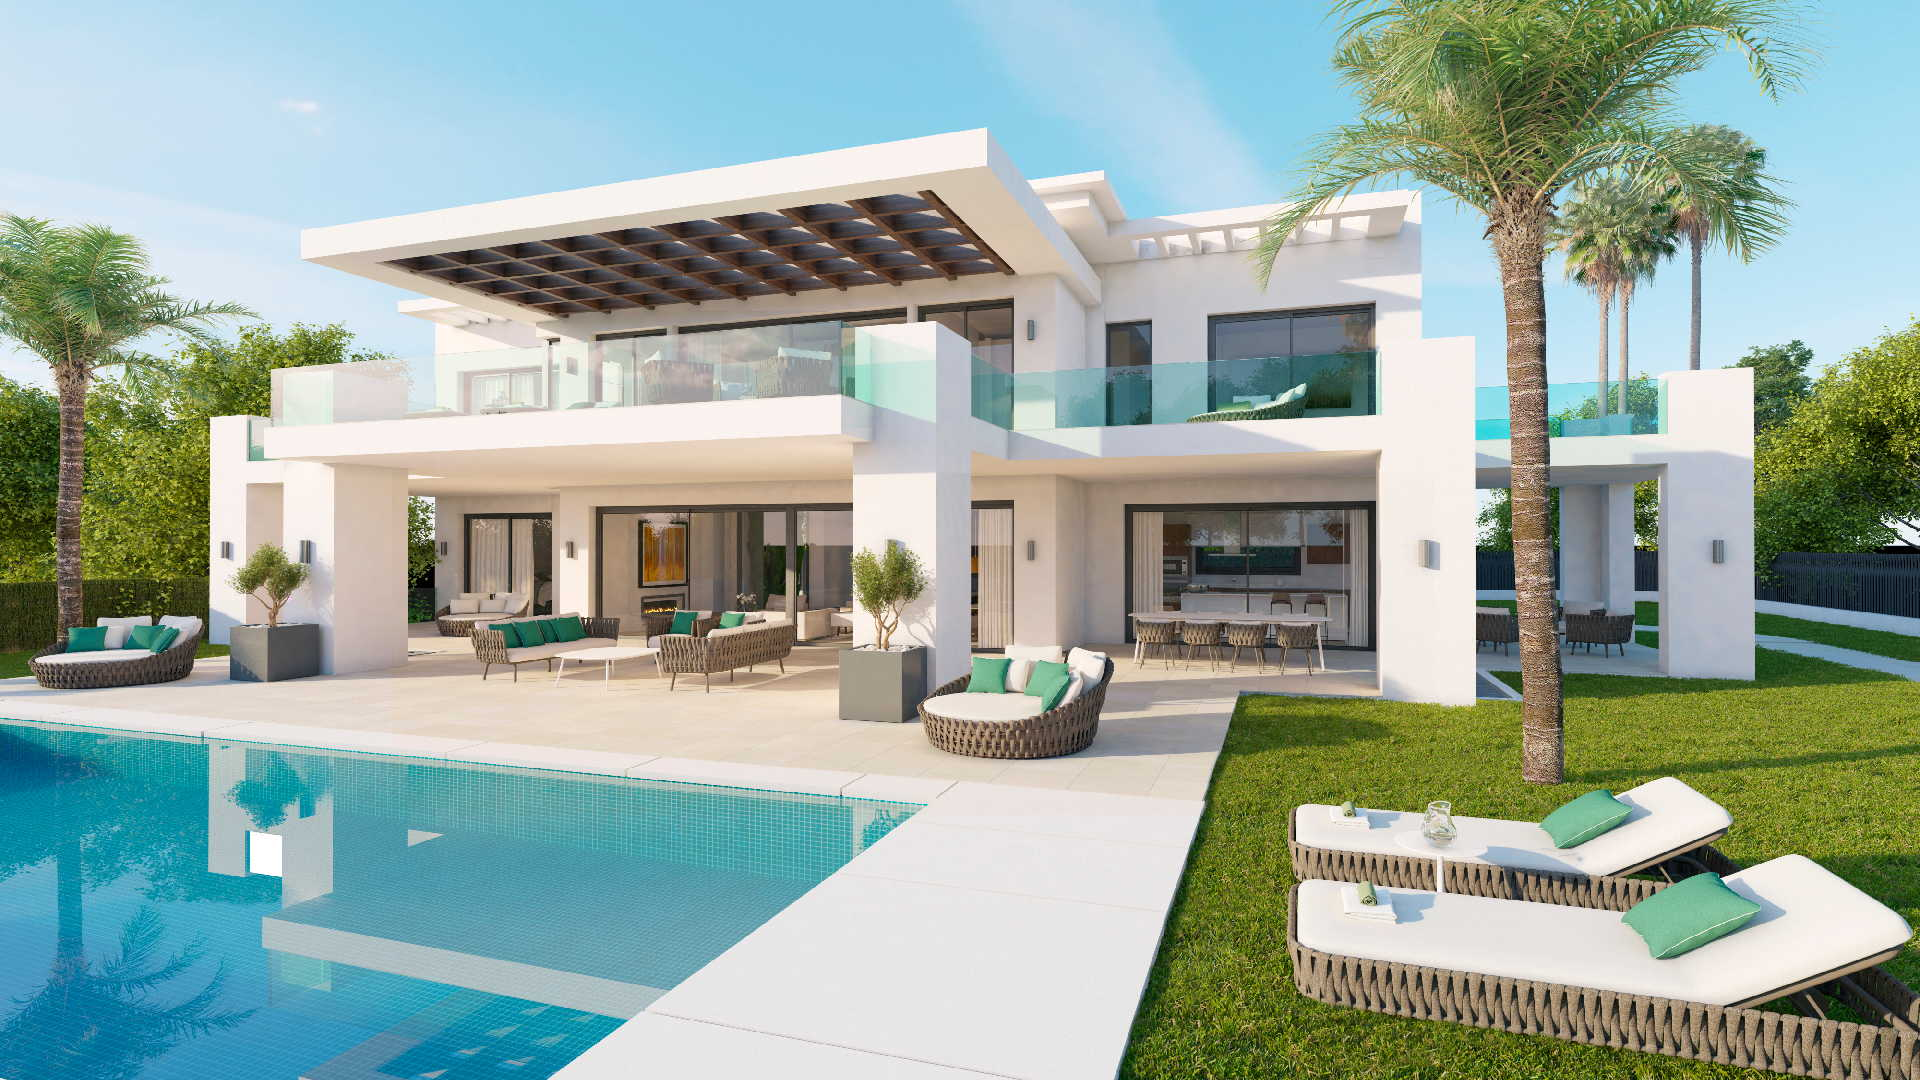 New villa in los olivos nueva andalucia marbella for sale for Villa de luxe design